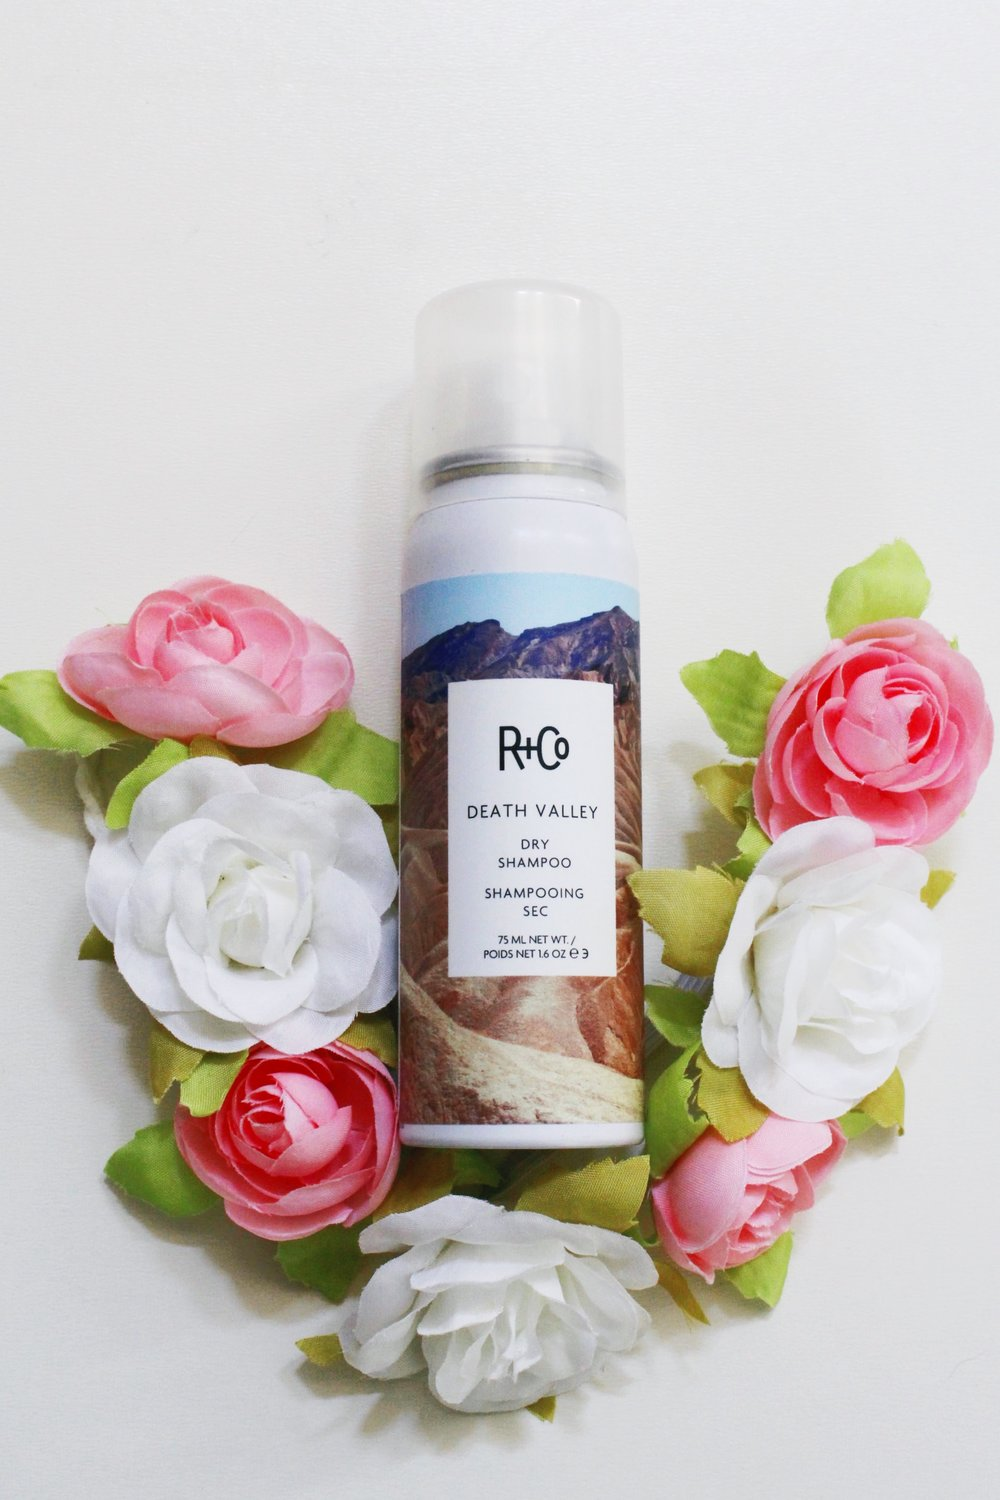 R+Co Death Valley Dry Shampoo with a pink and white flower crown headband